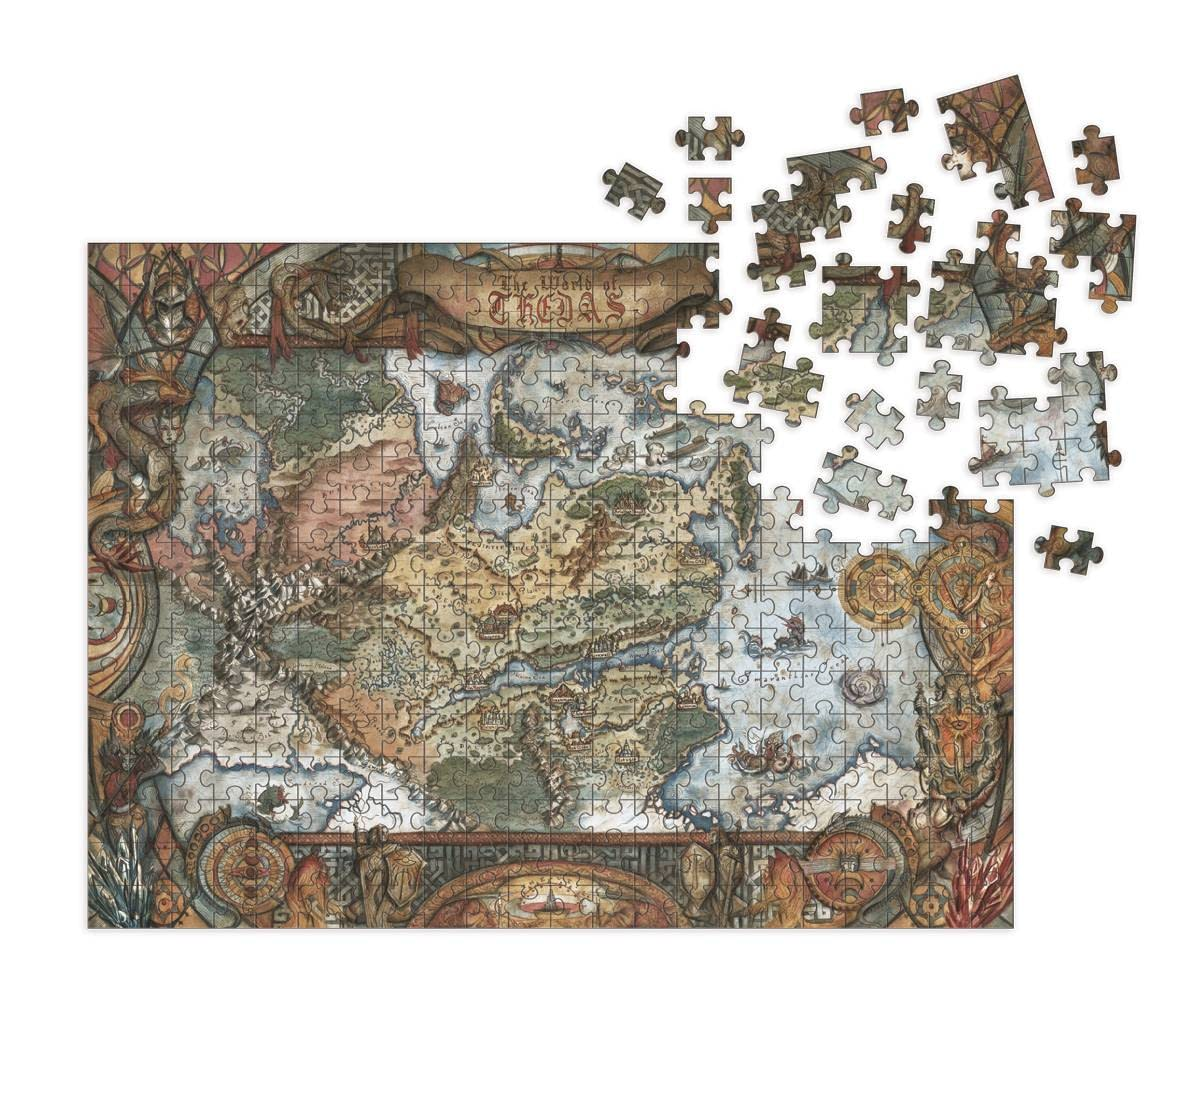 DRAGON AGE WORLD OF THEDAS MAP PUZZLE